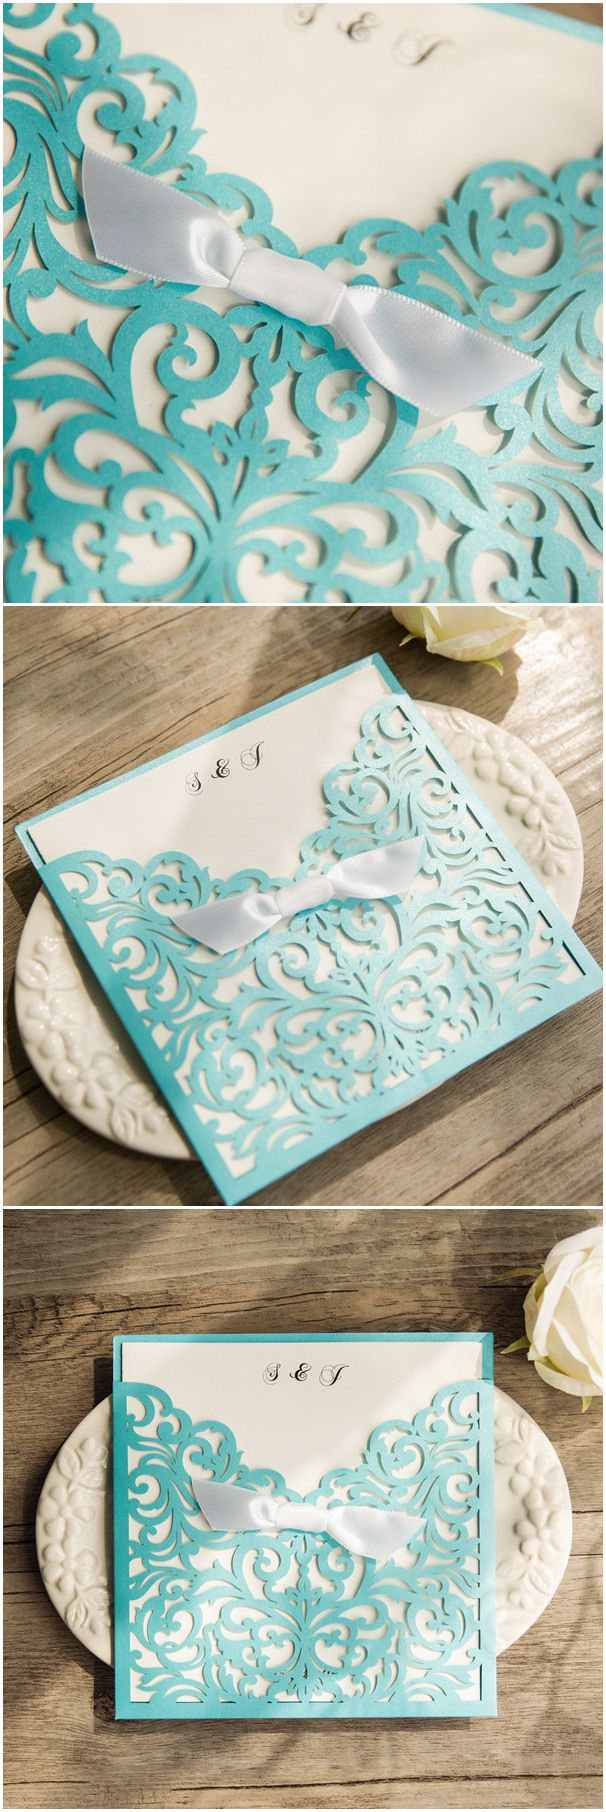 Tiffany blue themed laser cut wedding invitations perfect for your big day